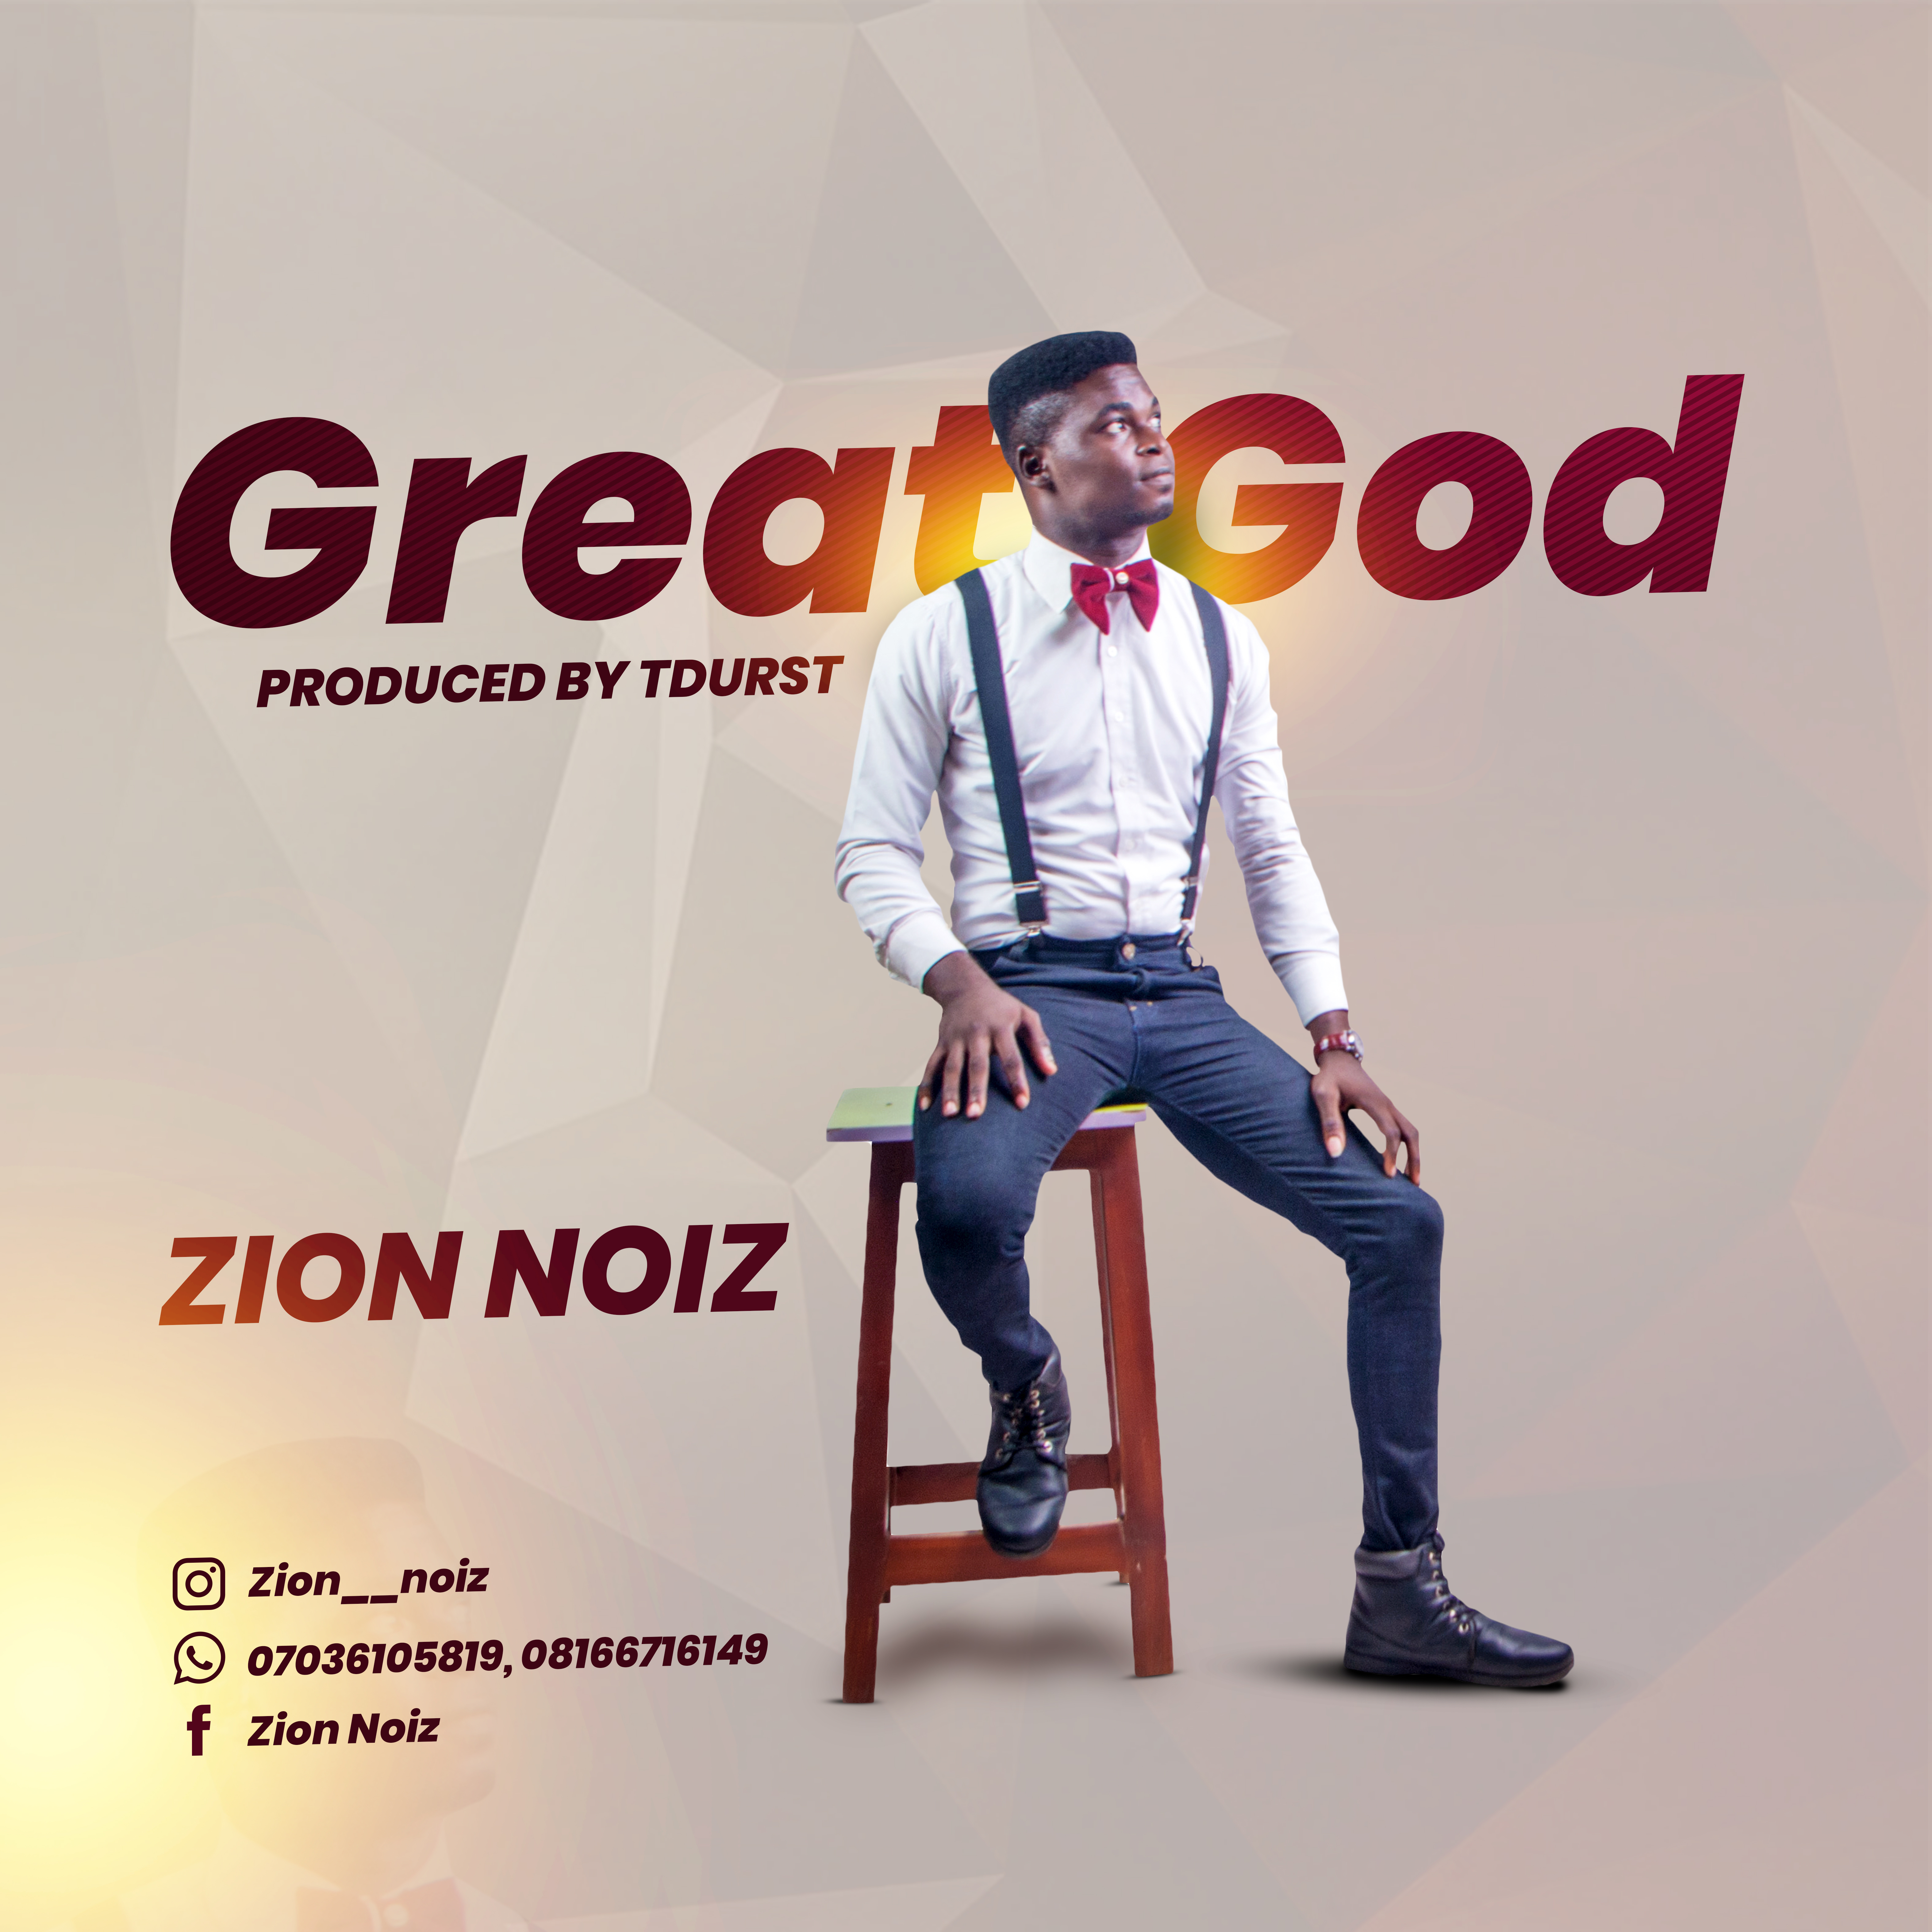 GREAT GOD - Zion Noiz